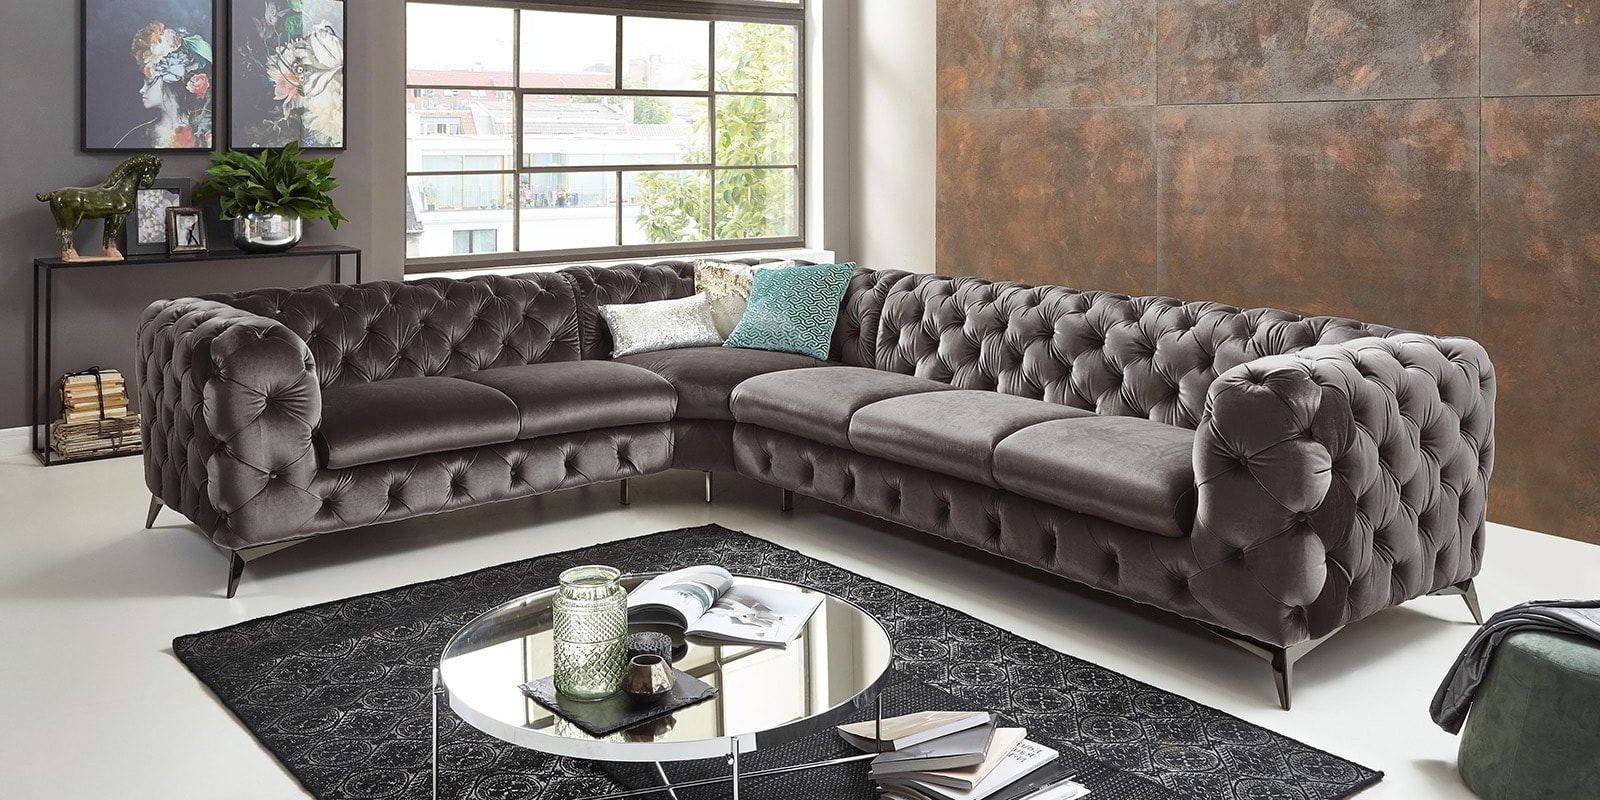 Chesterfield Ecksofa Grau Samt Big Emma Spiegelverkehrt 1 In 2020 Chesterfield Ecksofa Ecksofa Sofa